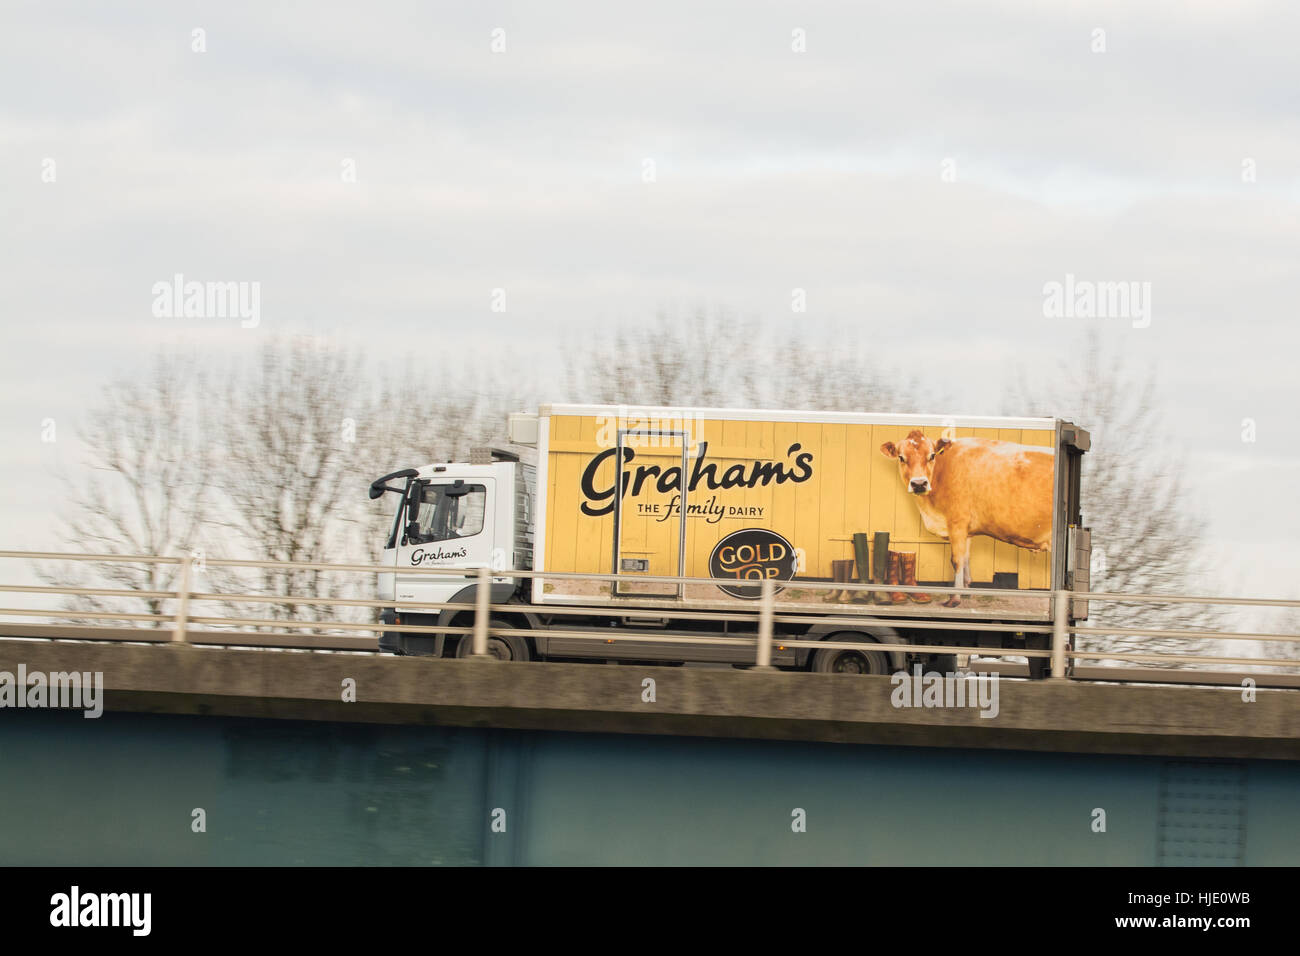 Graham's dairy delivery lorry with Gold Top advertising - Scotland, UK - Stock Image